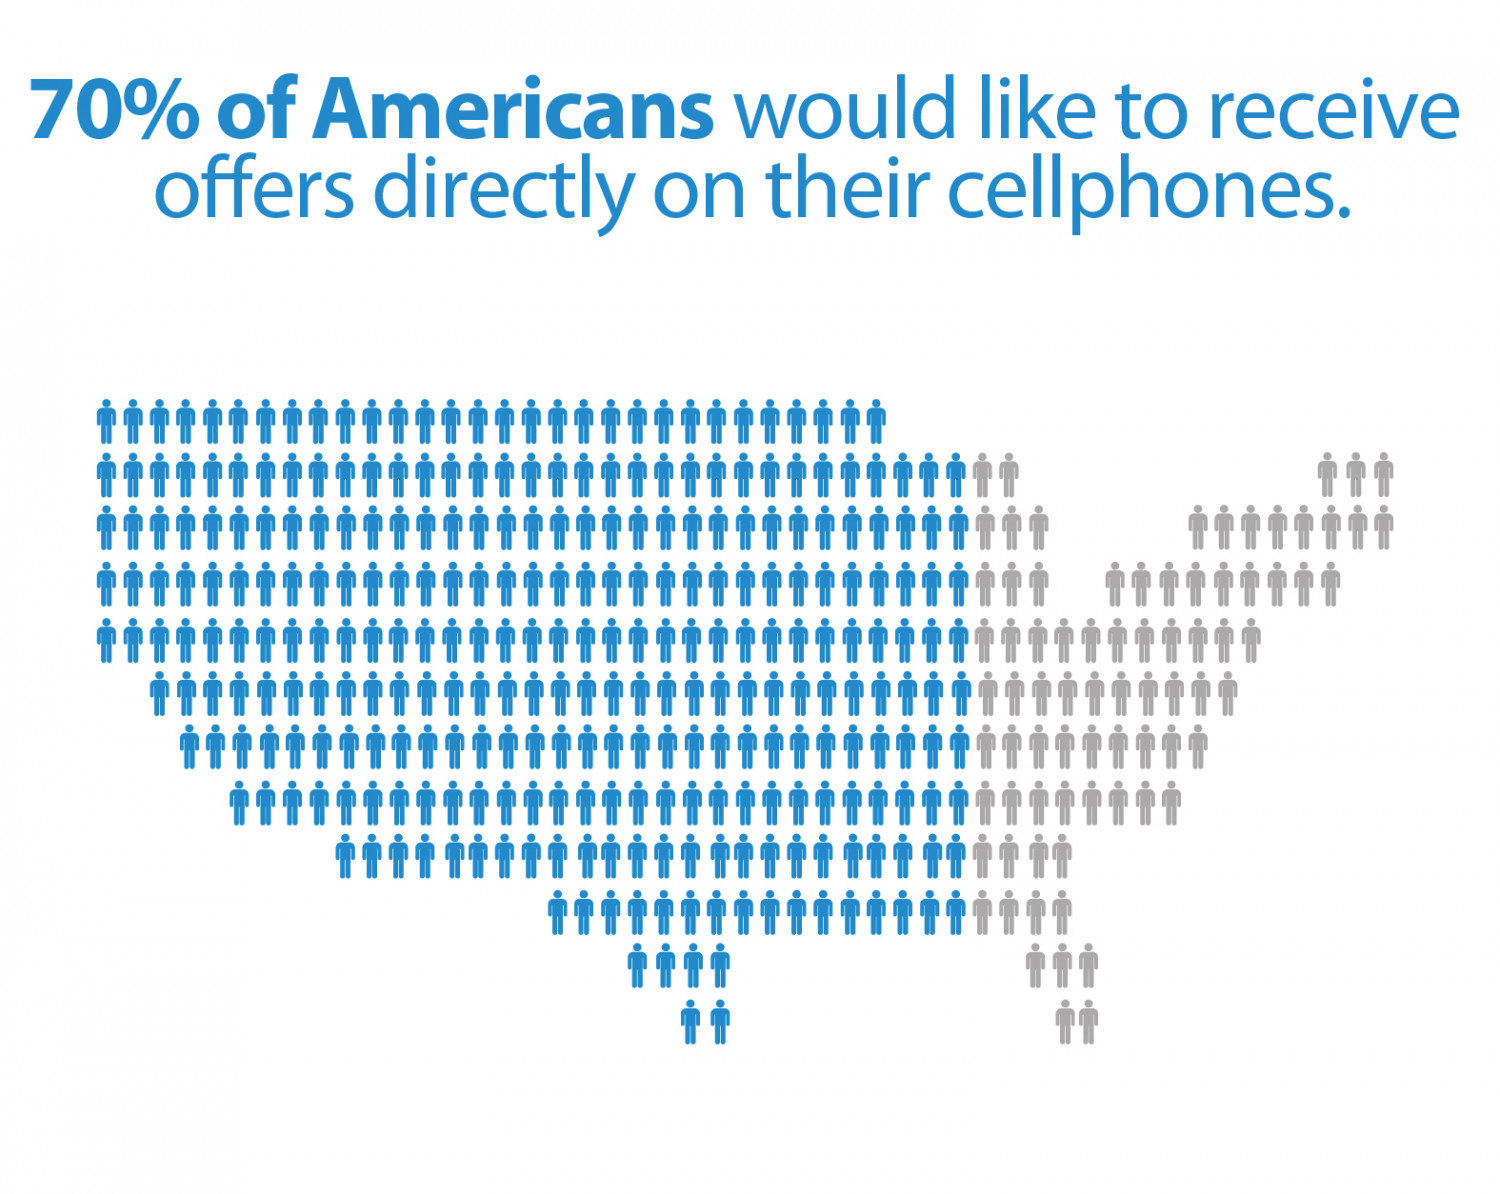 Percent of Americans Who'd Like Mobile Offers Infographic